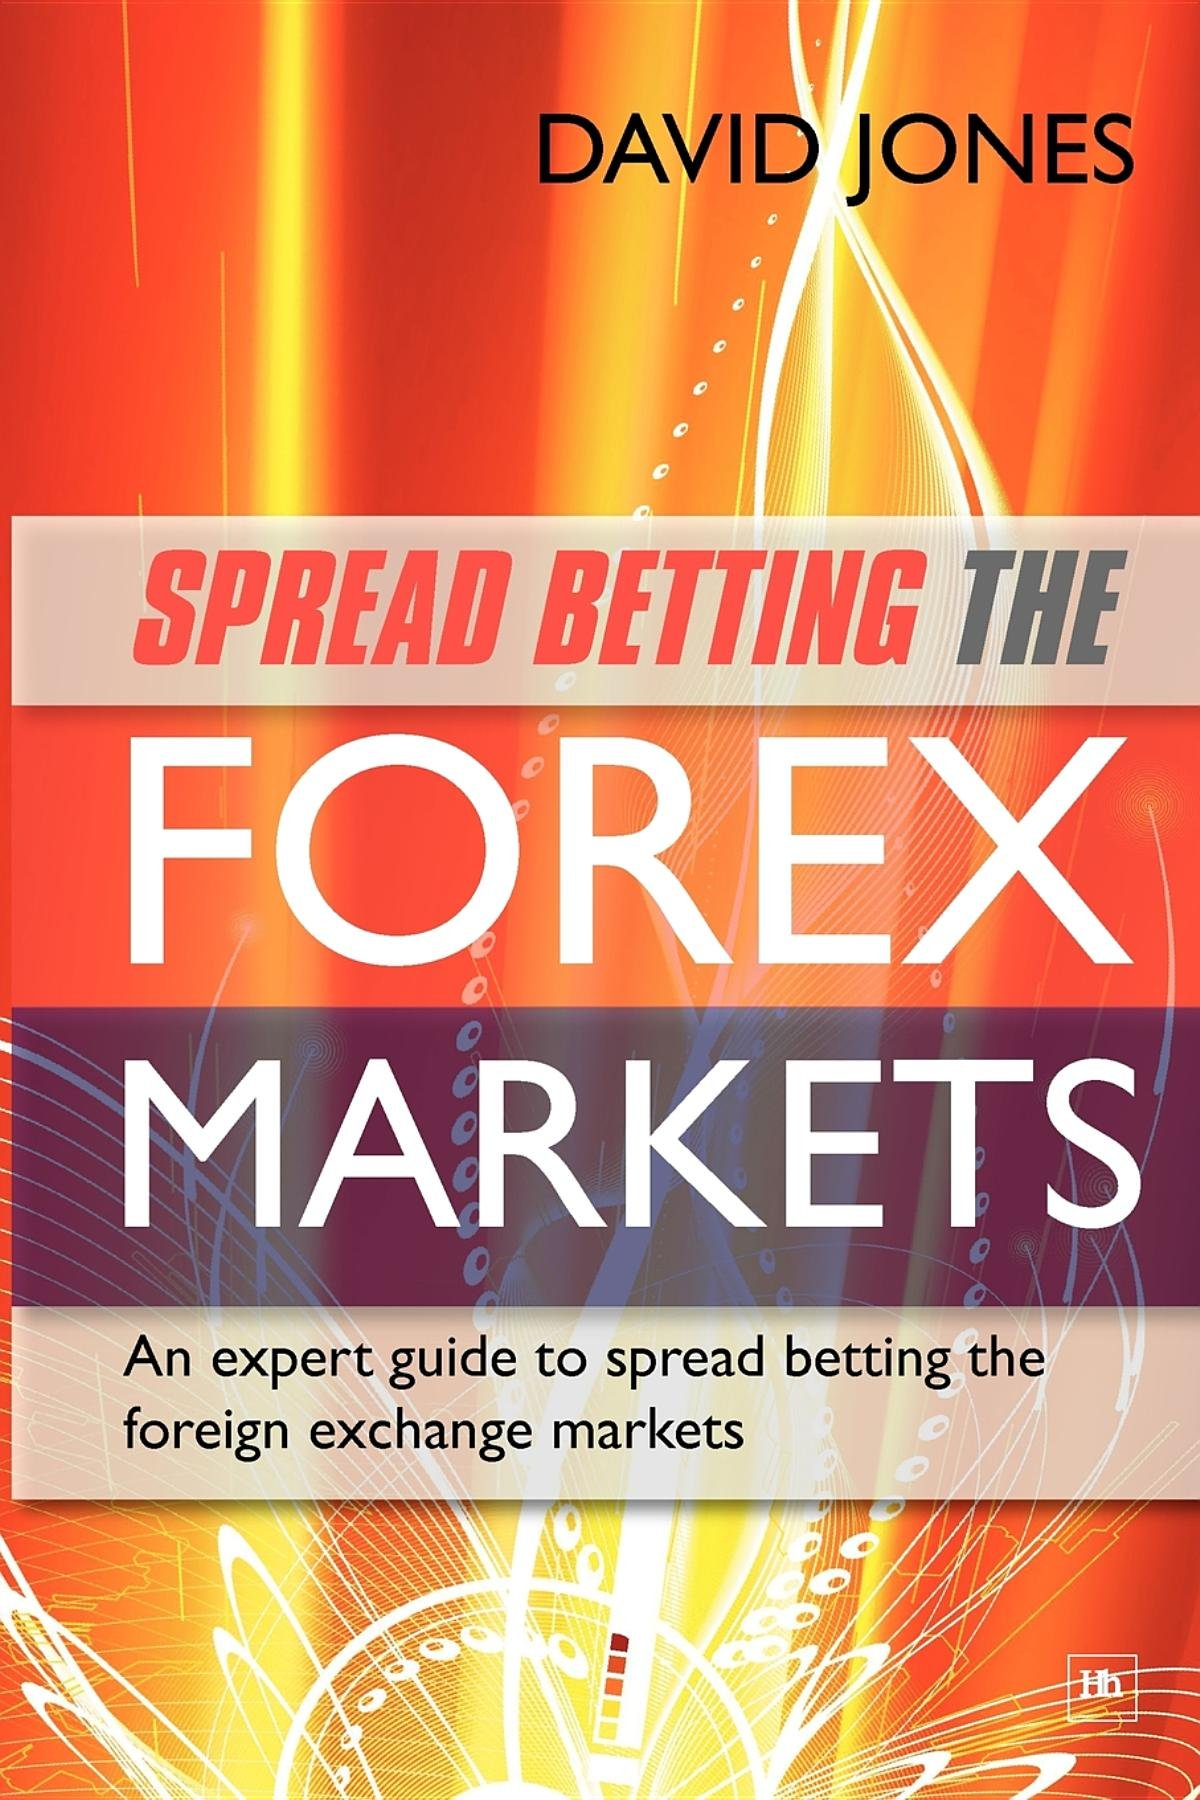 Spread betting forex from rags to riches csgo betting tips